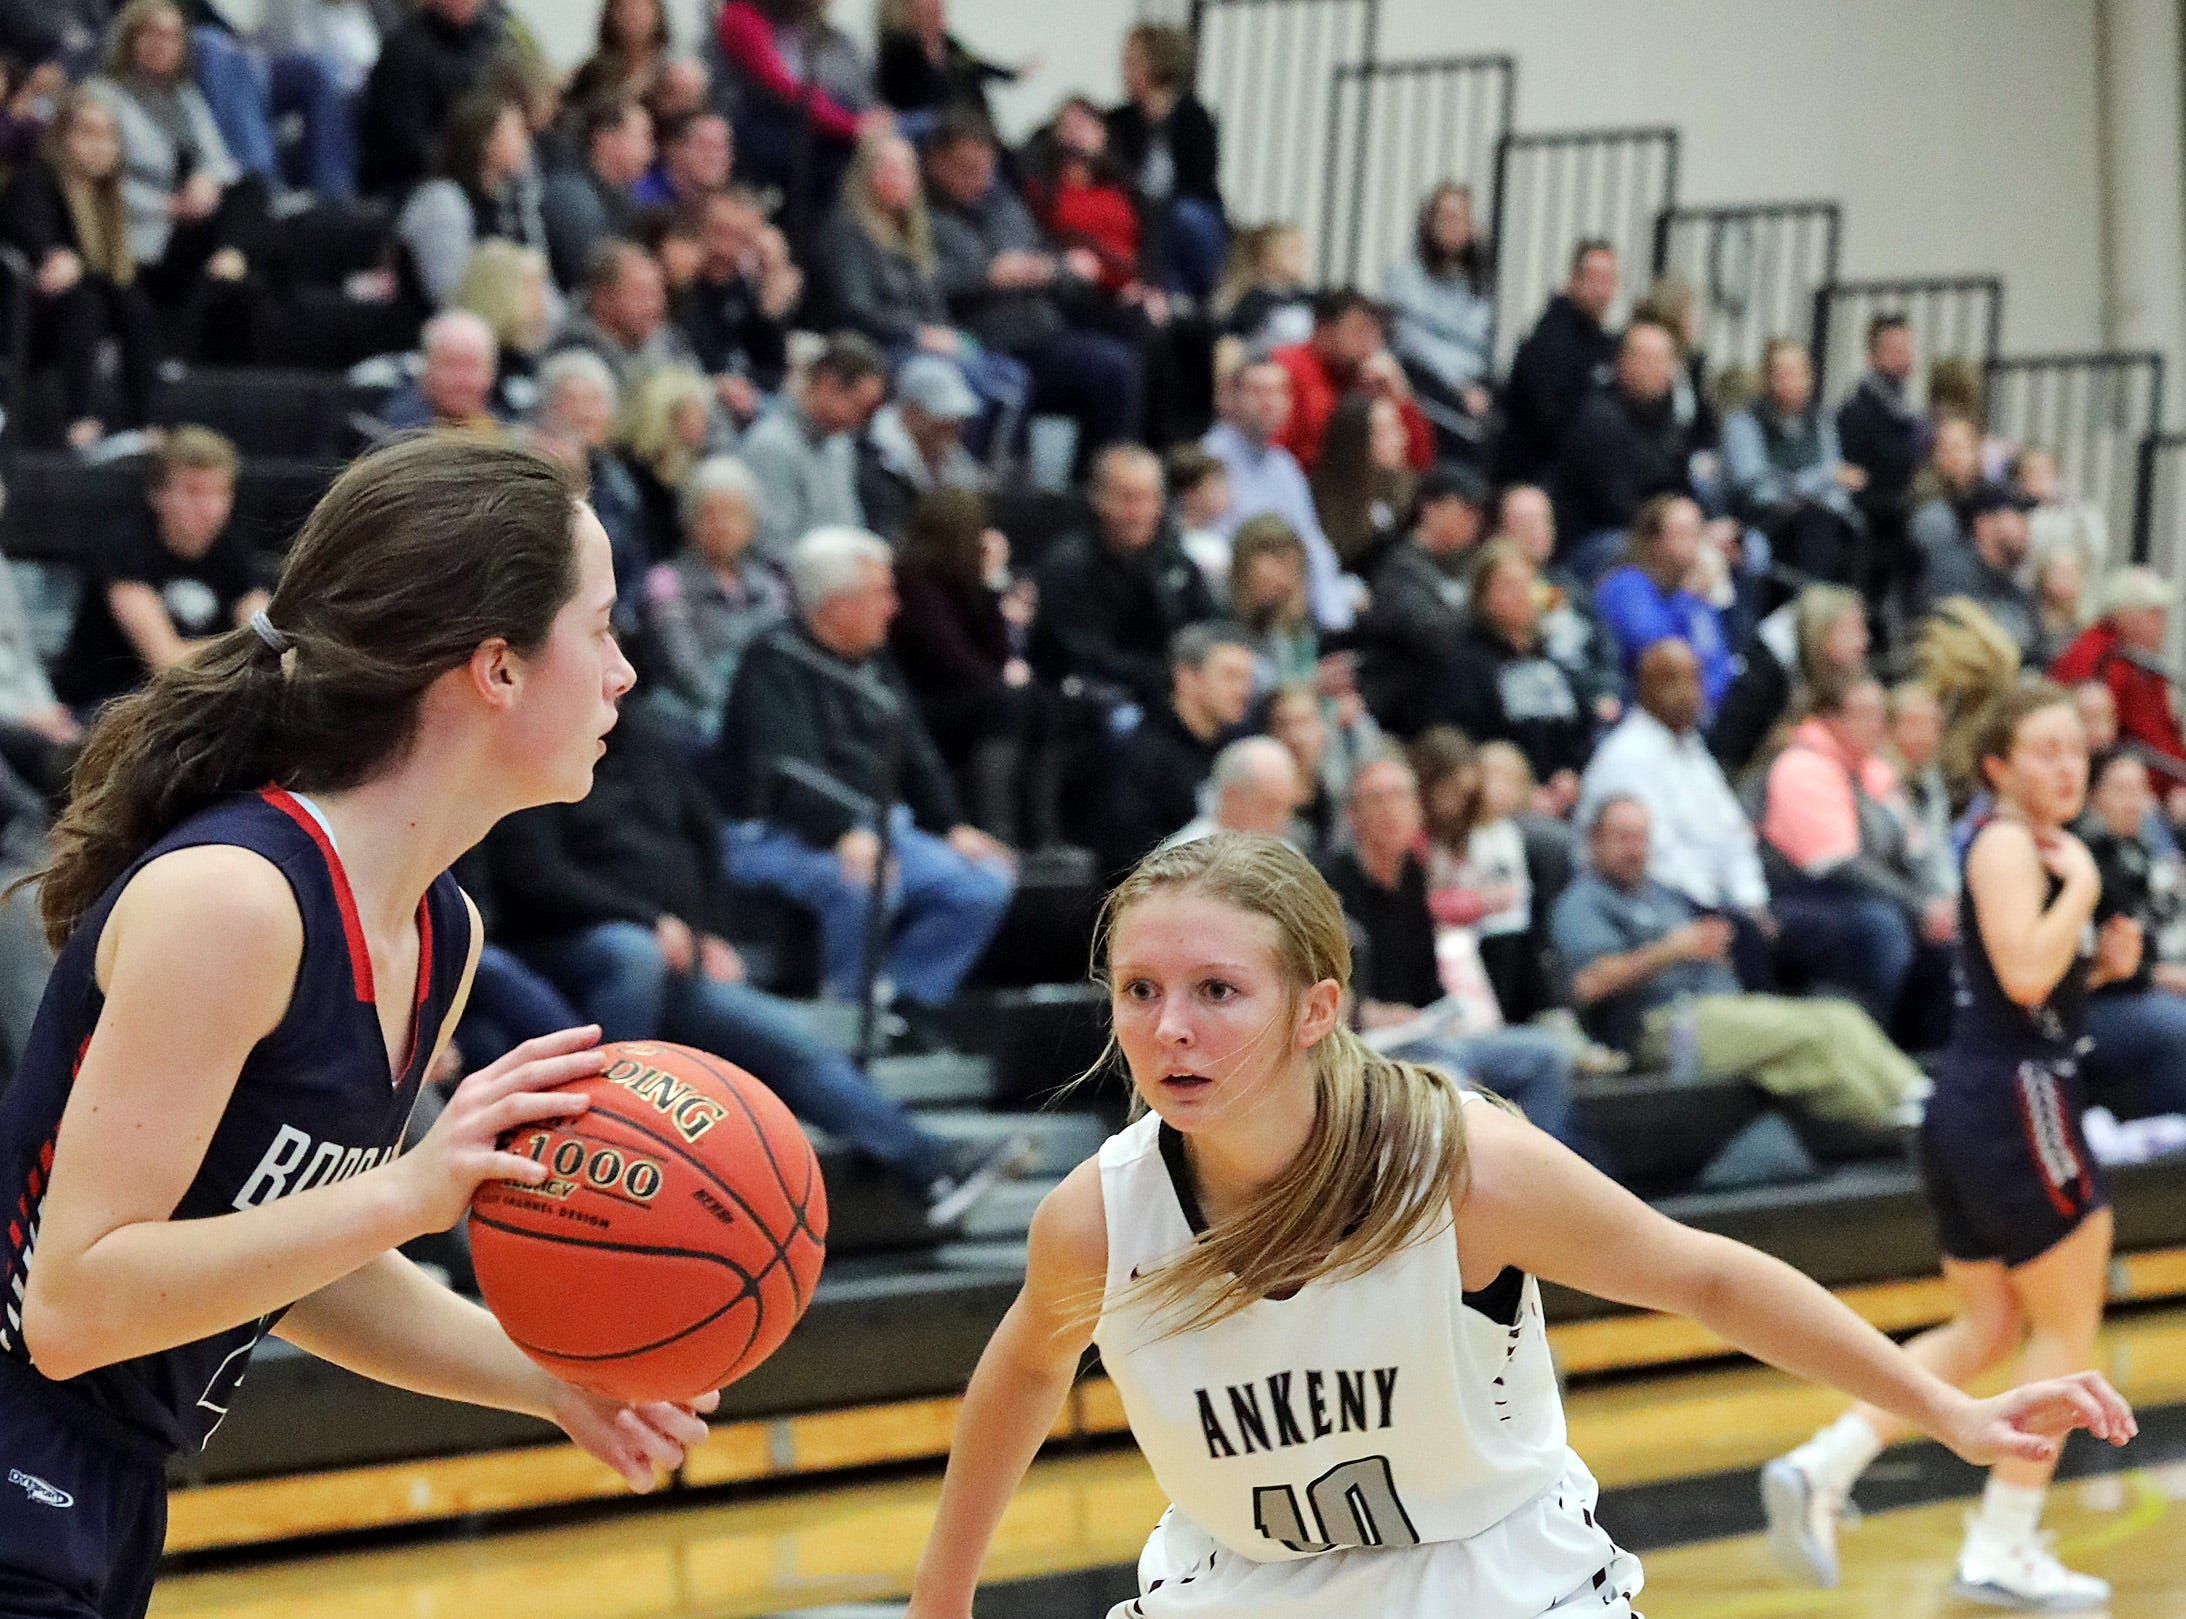 Ankeny Centennial senior Lily King applies the full-court pressure as the Marshalltown Bobcats compete against the Ankeny Centennial Jaguars in high school girls basketball on Tuesday, Jan. 8, 2019 at Ankeny Centennial High School.